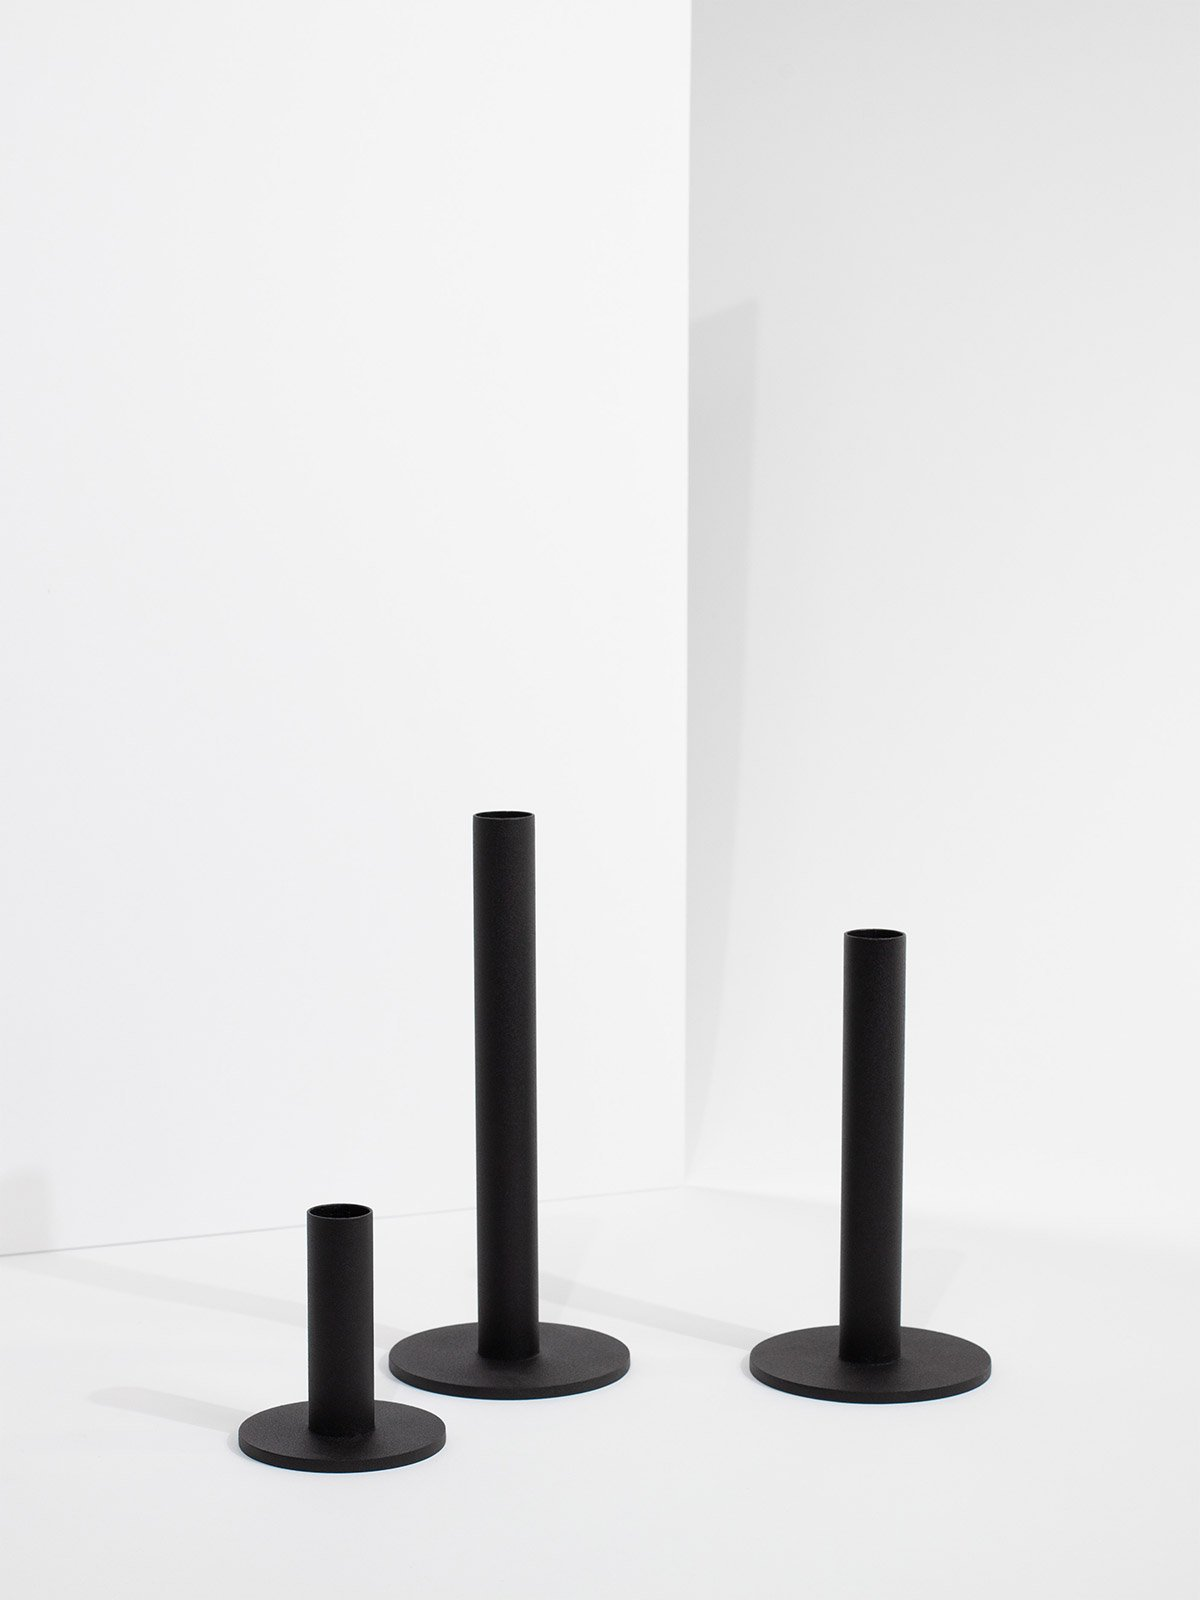 tapercandleholder_all_black_product1_miljuu.com_1312-019_020_021